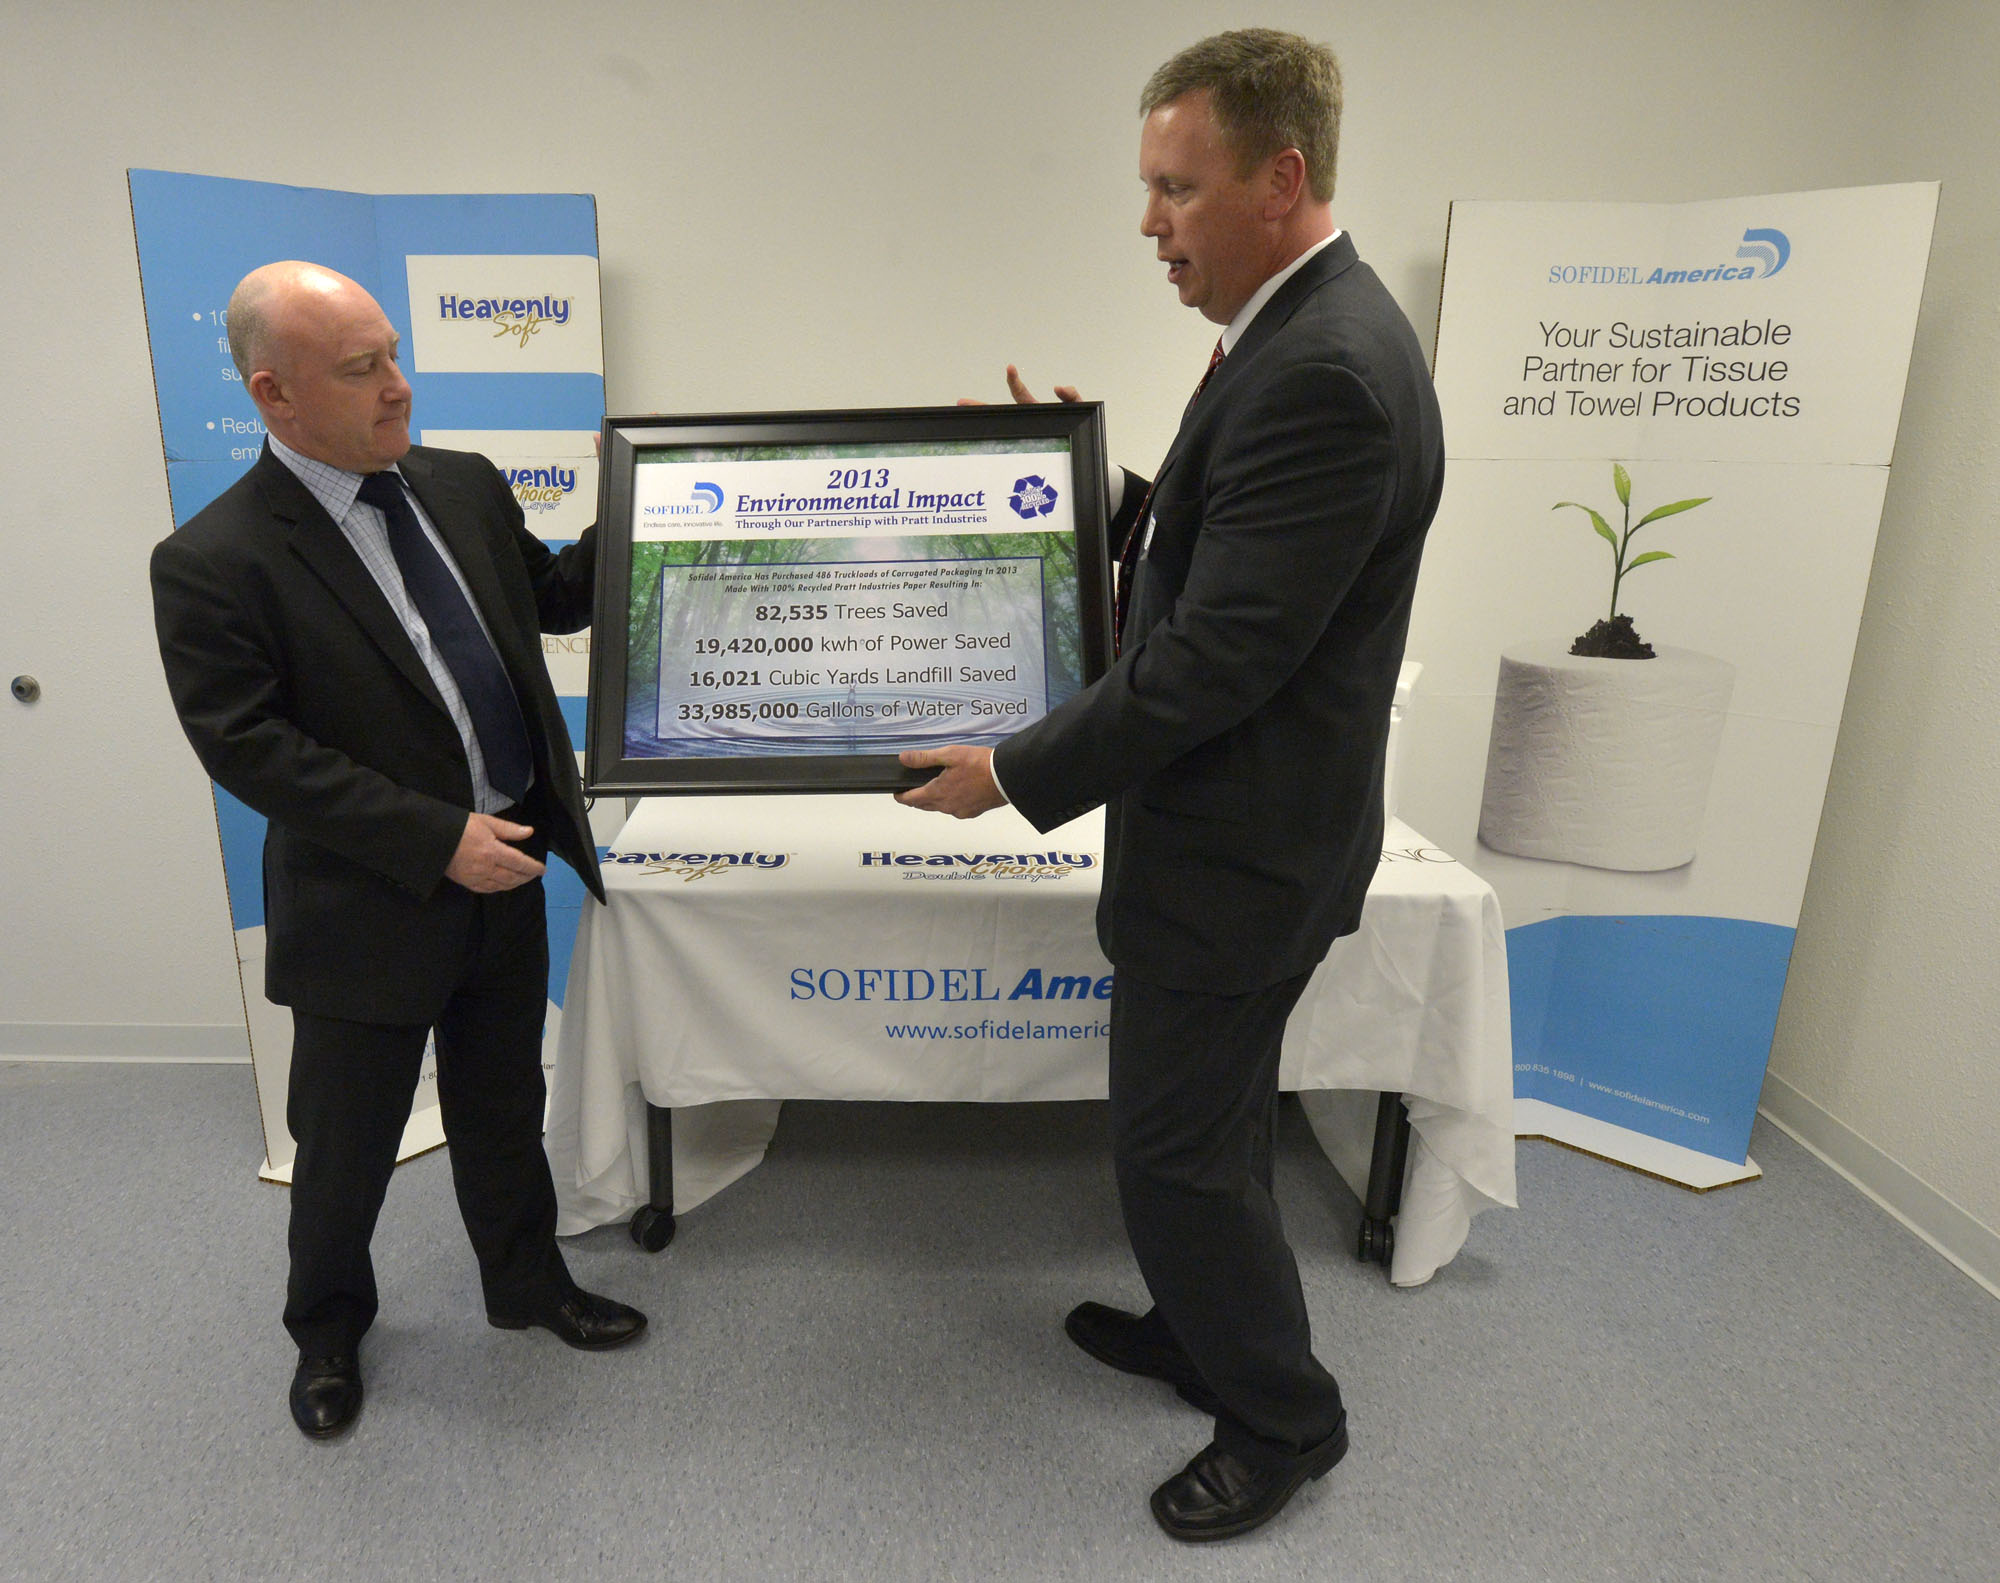 John Day, right, vice president and general manager with Pratt Industries, presents Tony Curtis, the CEO of Sofidel America, with a Sustainability Award on Wednesday.